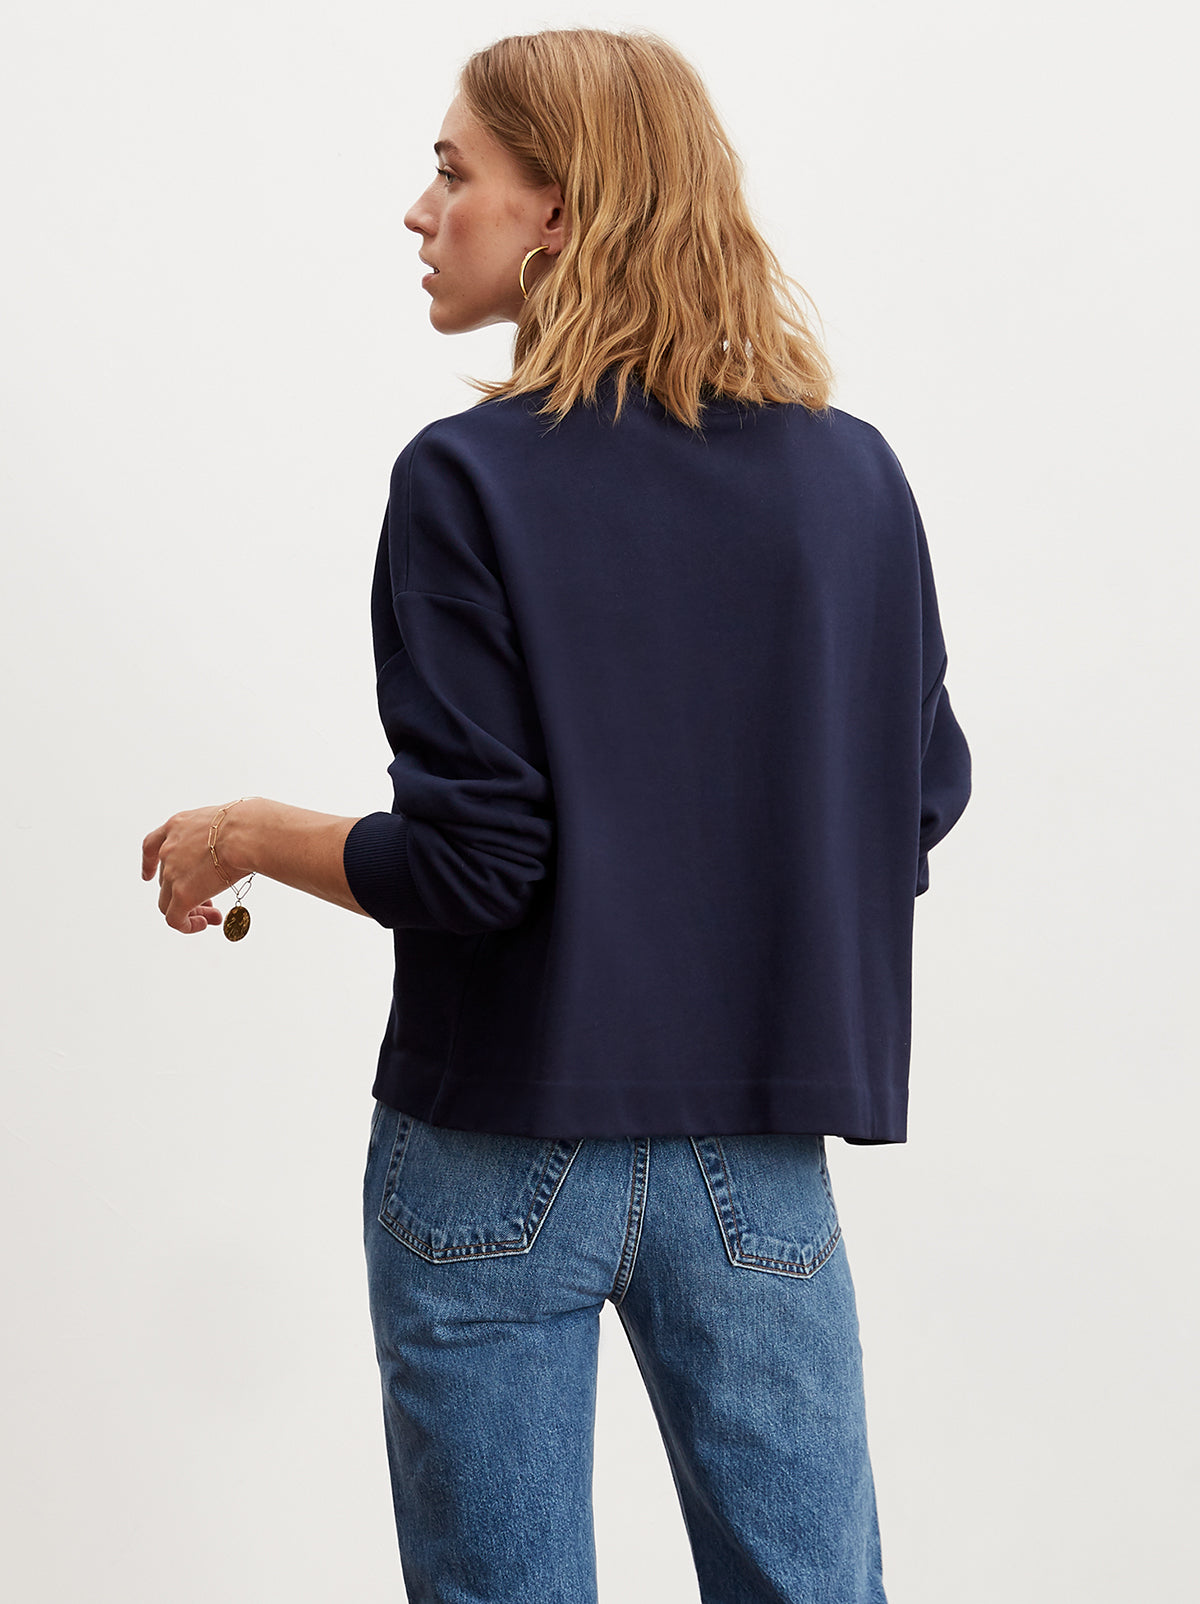 W Embroidered Navy Cotton Sweatshirt by KITRI Studio